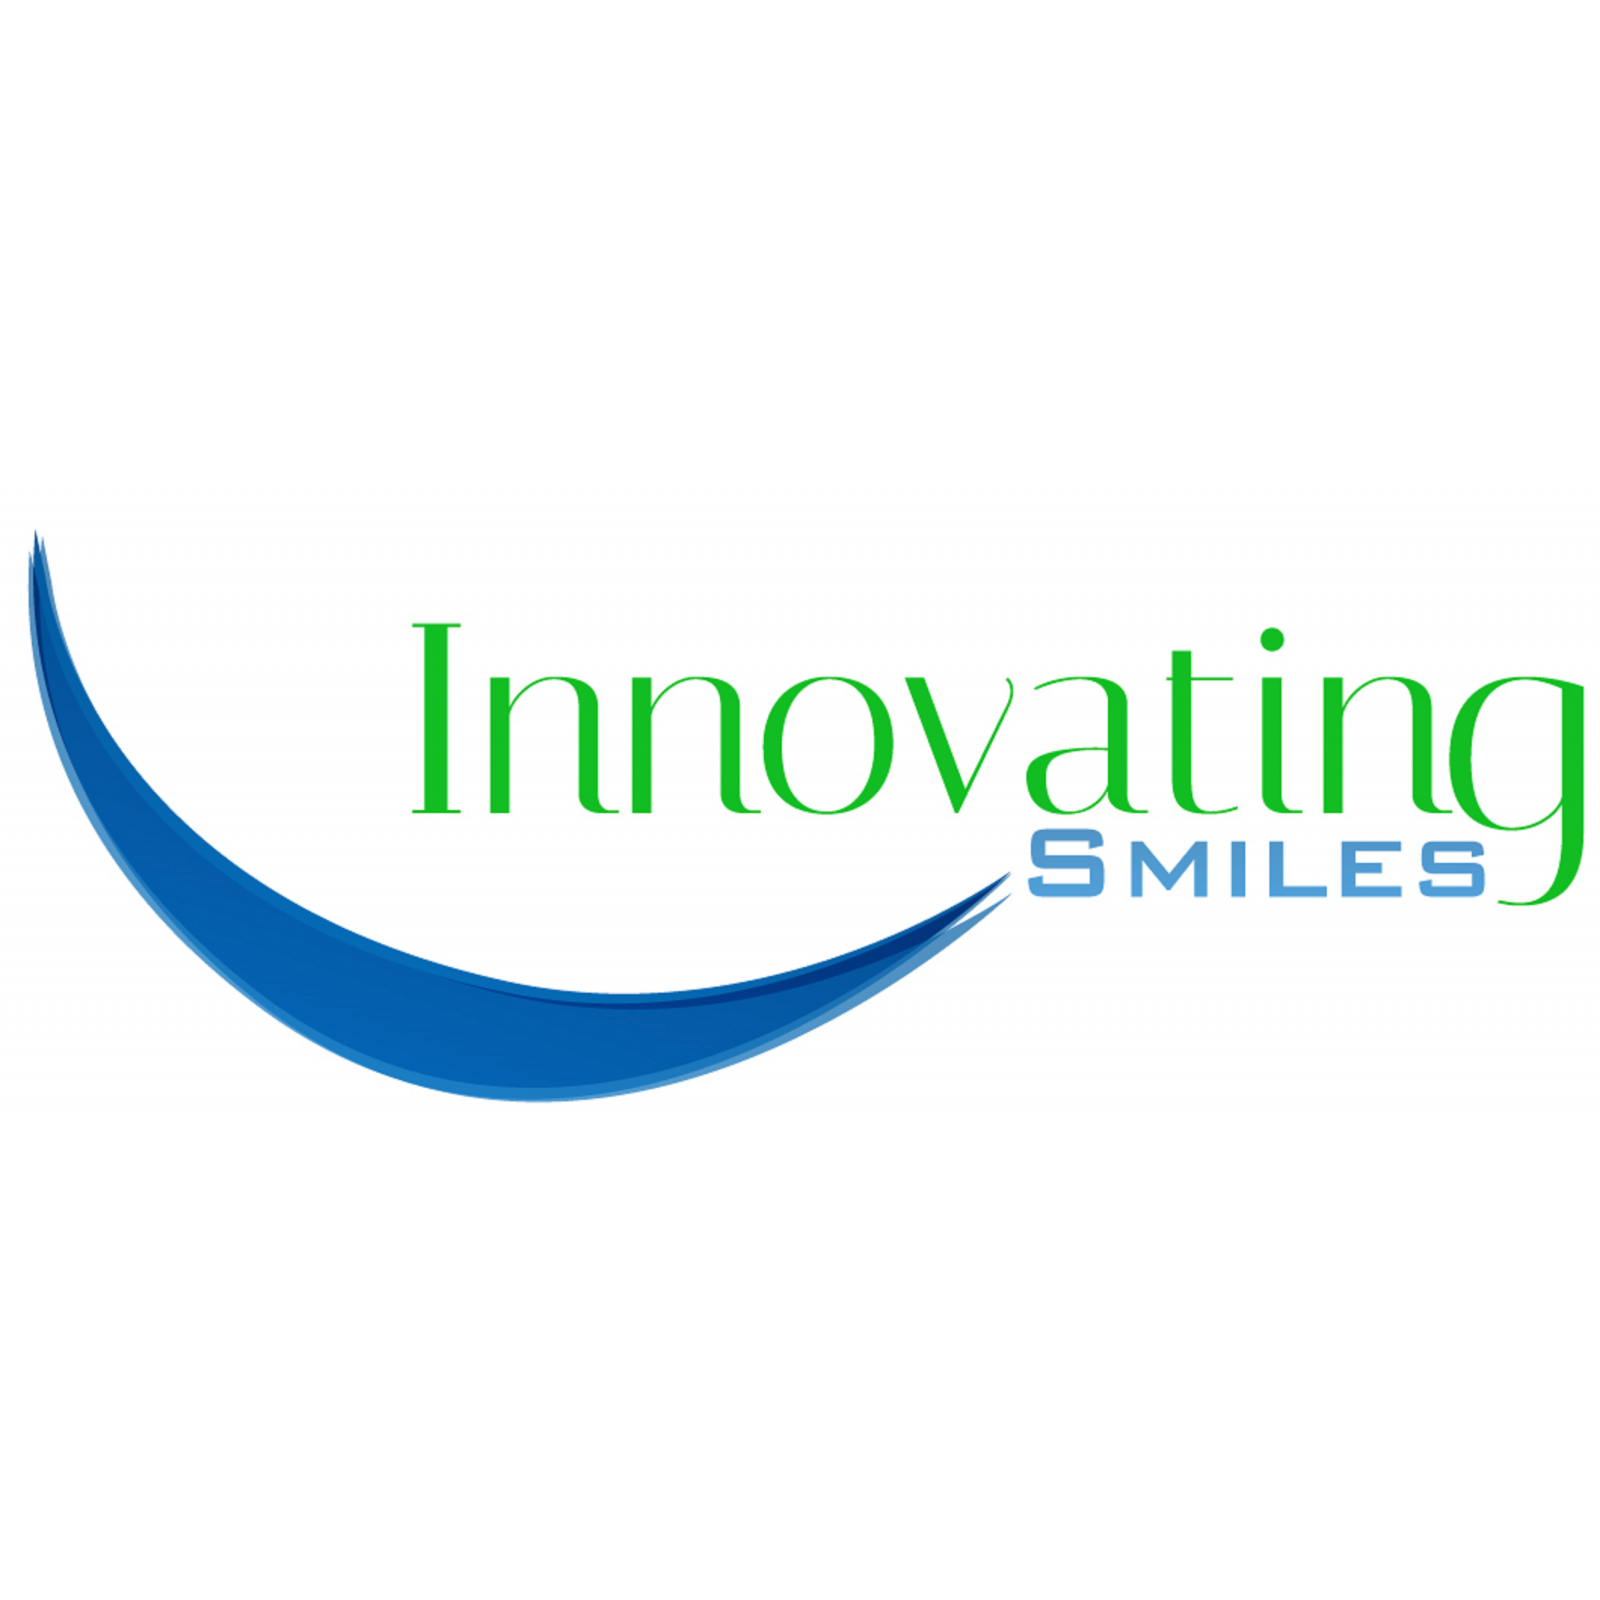 Innovating Smiles